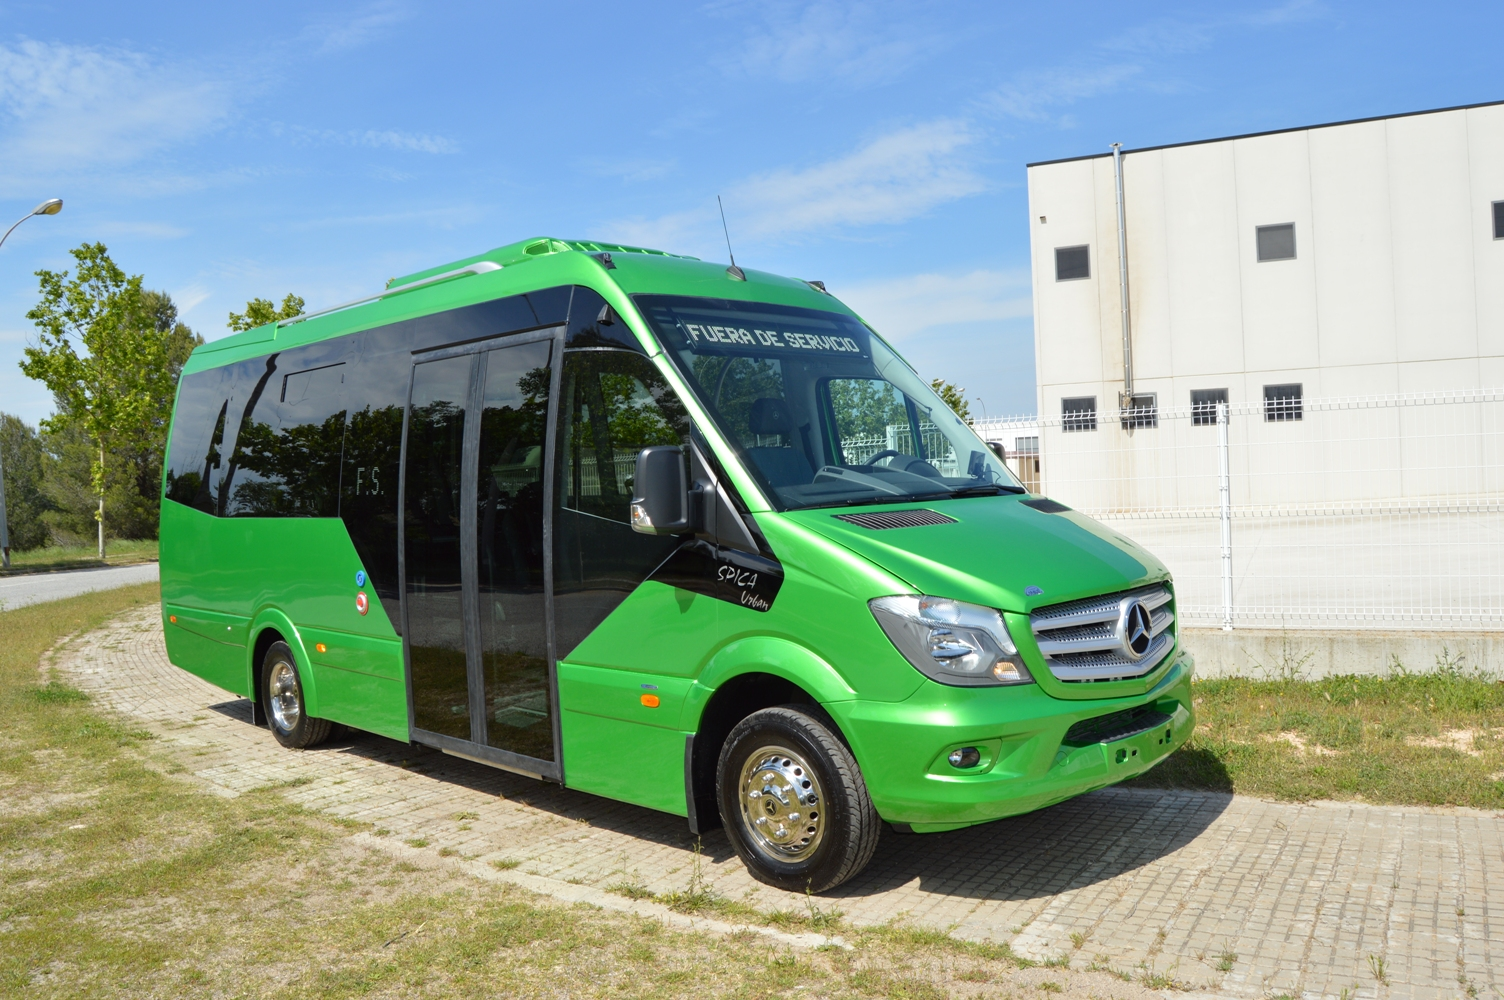 spica urban low entry car-bus.net